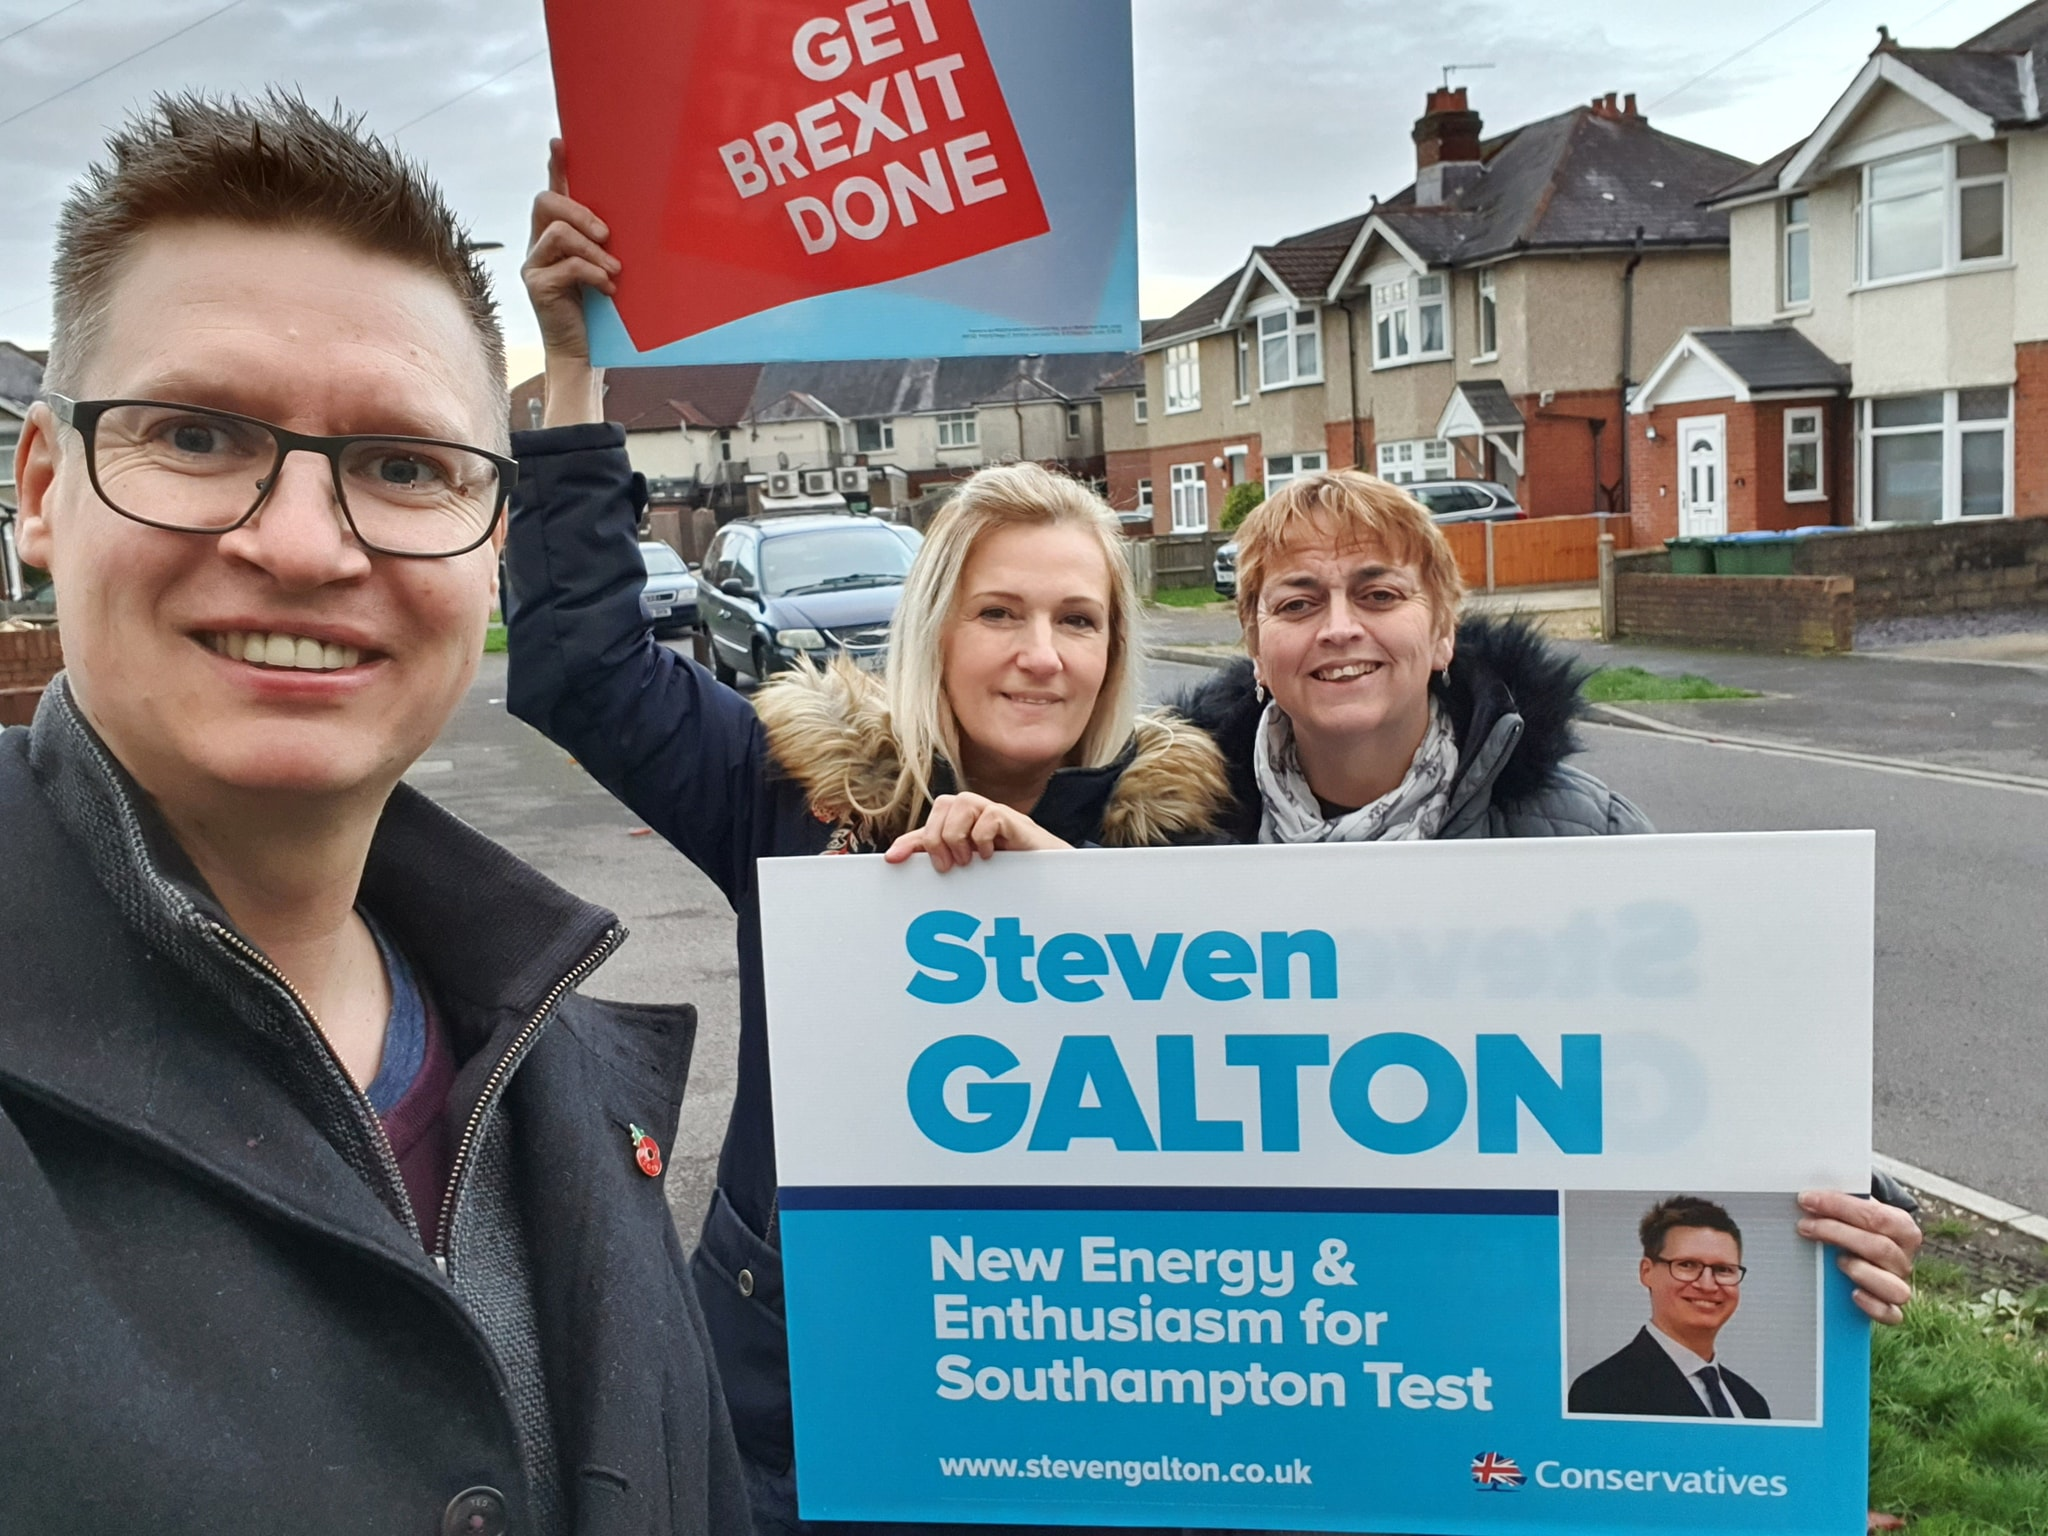 Steven Galton in Redbridge Ward, Southampton Test